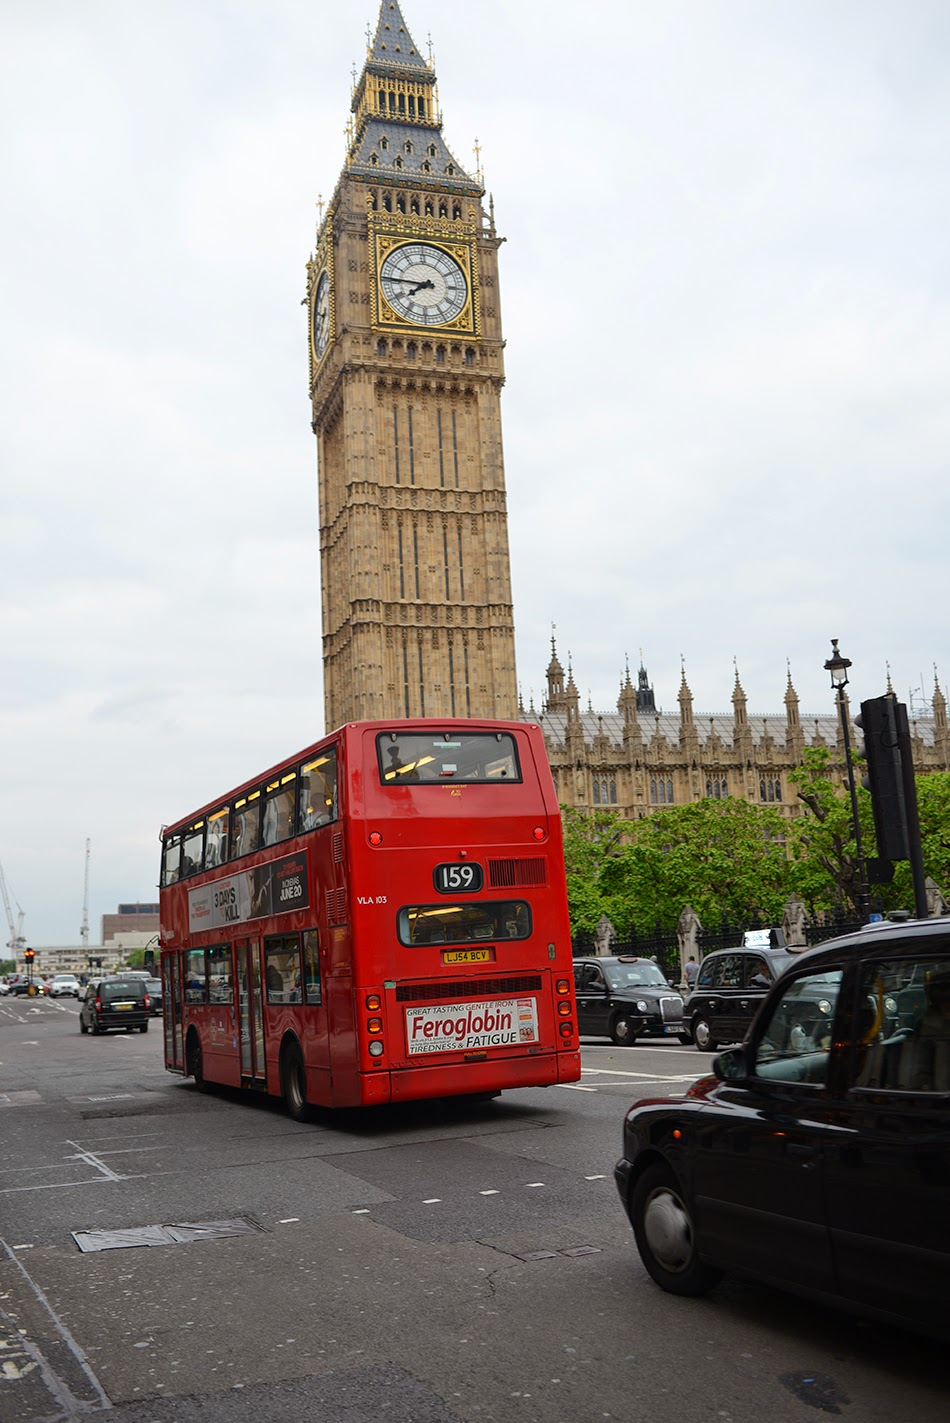 pretty nice 6eeb6 5b64c Arriving back to one of my favorite places EVER,  London. The double decker  red bus s, phone booths and architecture just get me going!